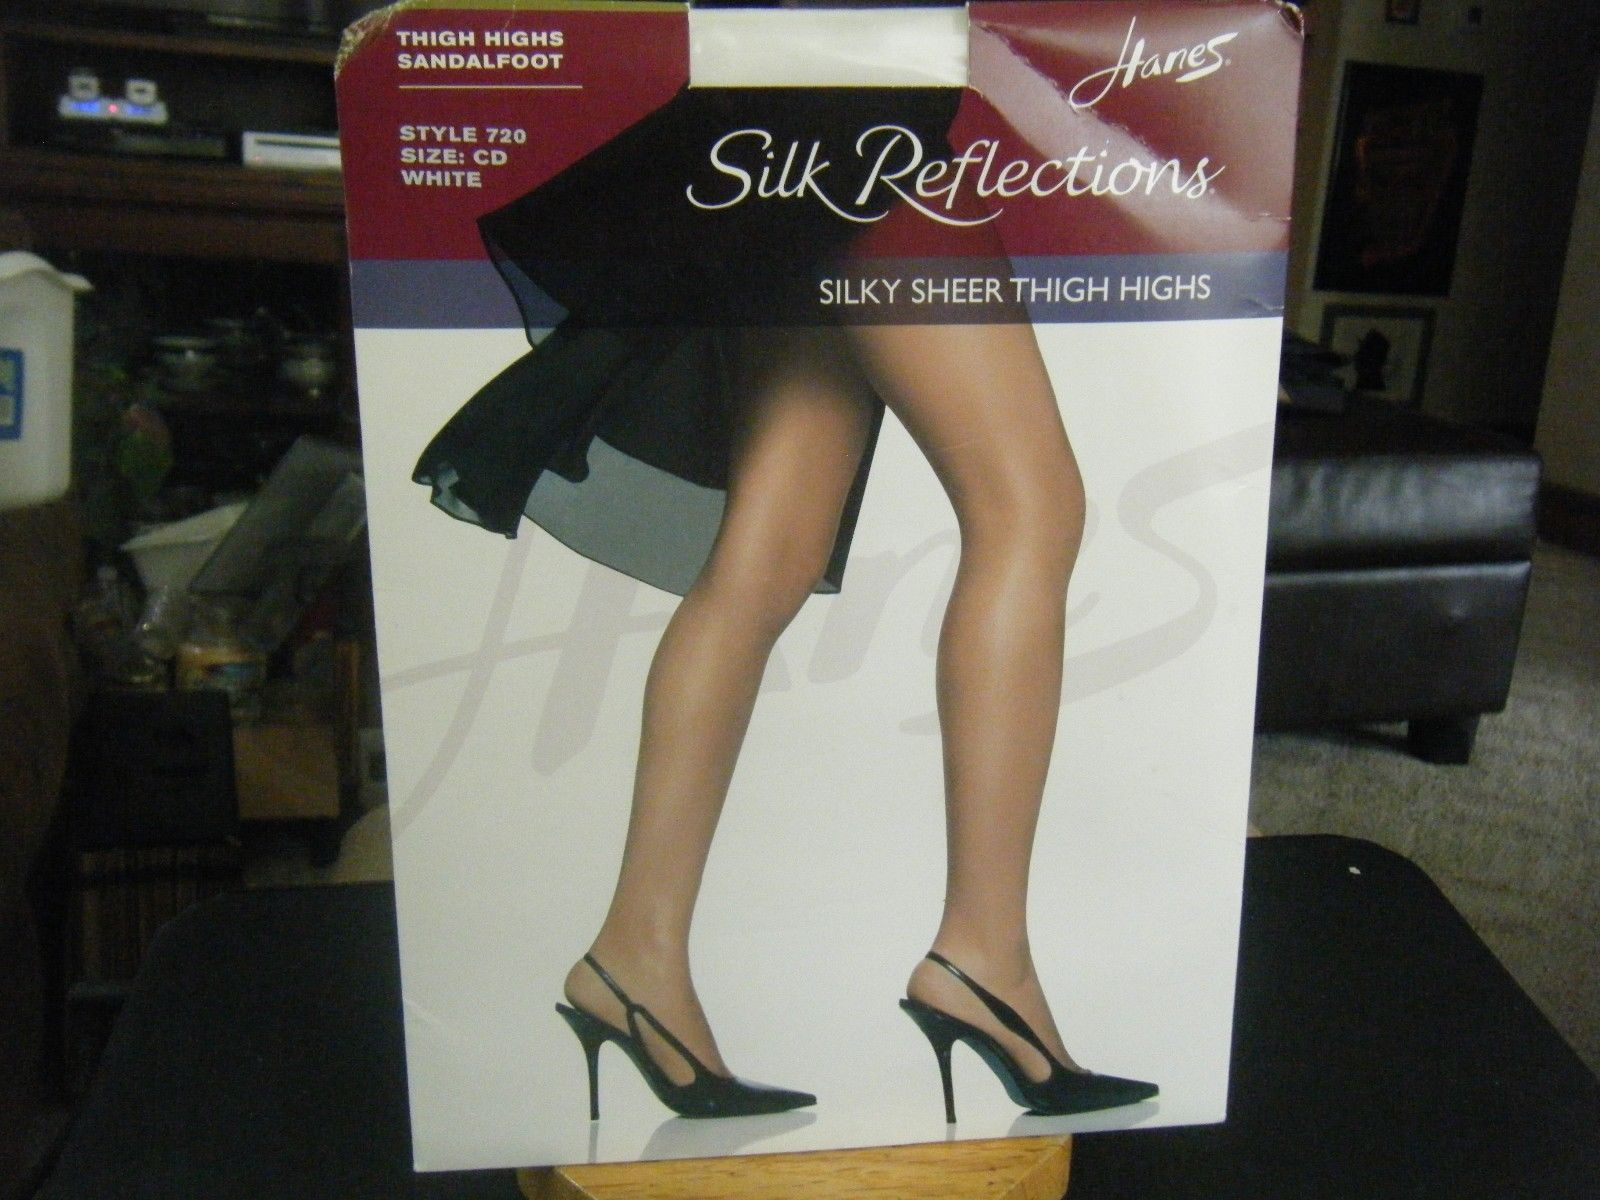 4aabf555bbd Hanes Silk Reflections Sandalfoot Silky and similar items. 57